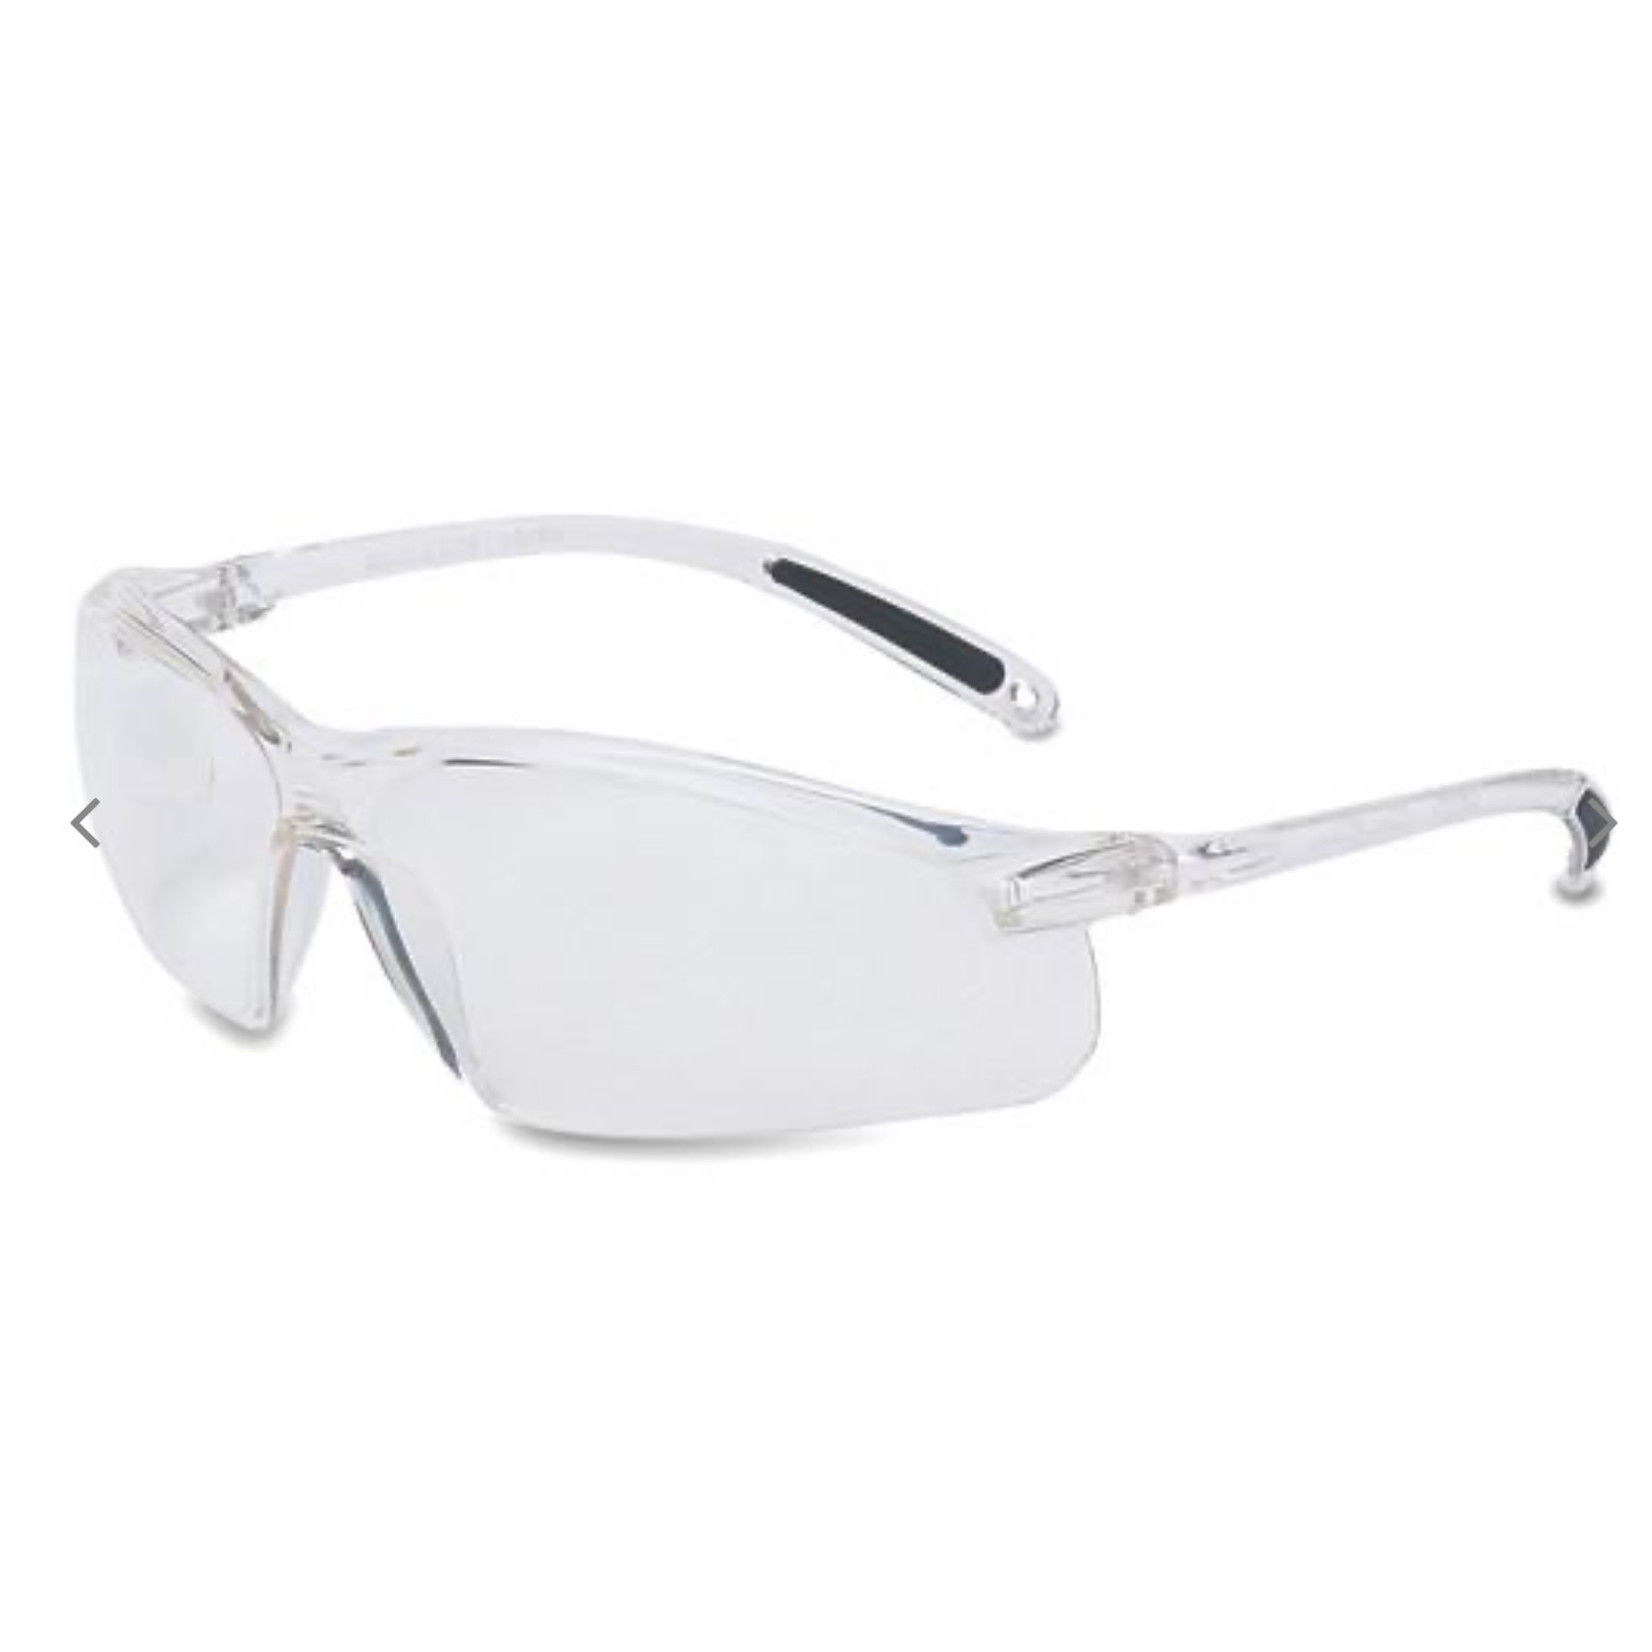 Honeywell A700 Clear Safety Glasses